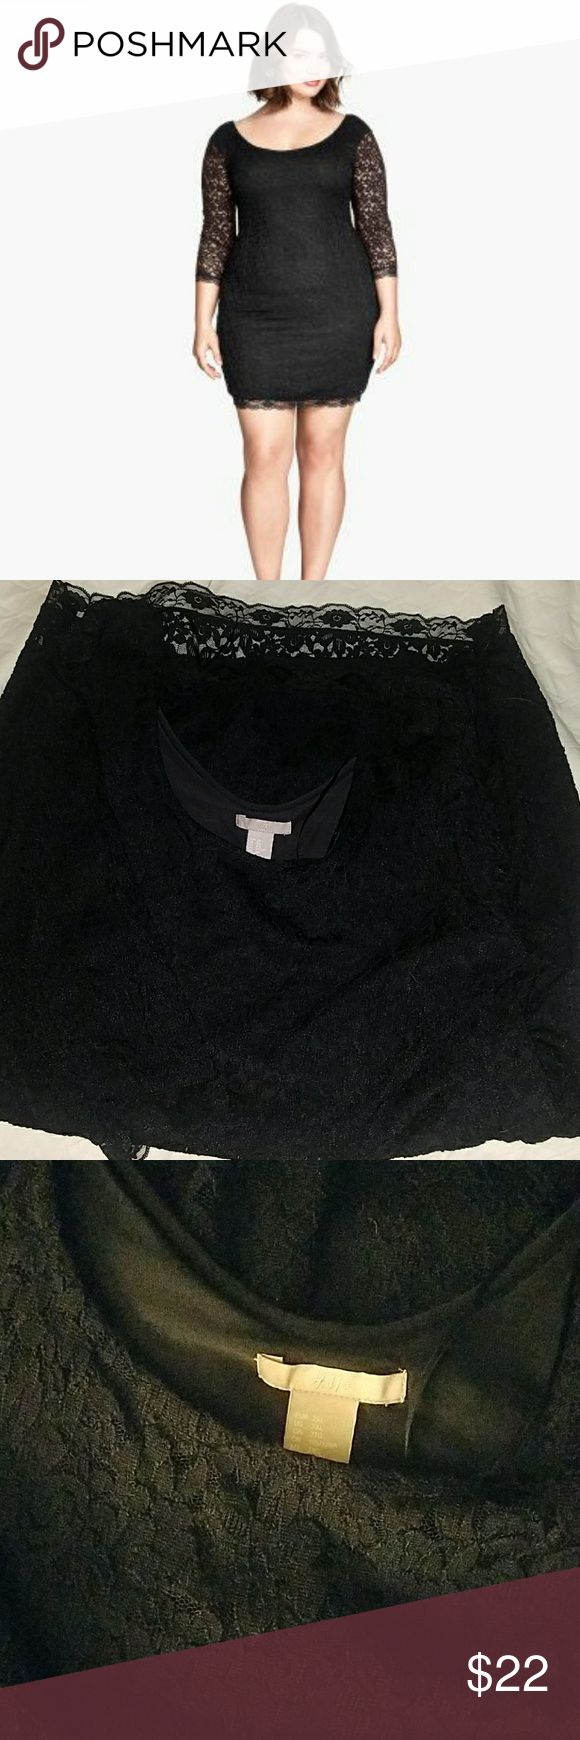 H&M black lace dress beautiful black plus size lace dress with sleeves.  Worn once. H&M Dresses